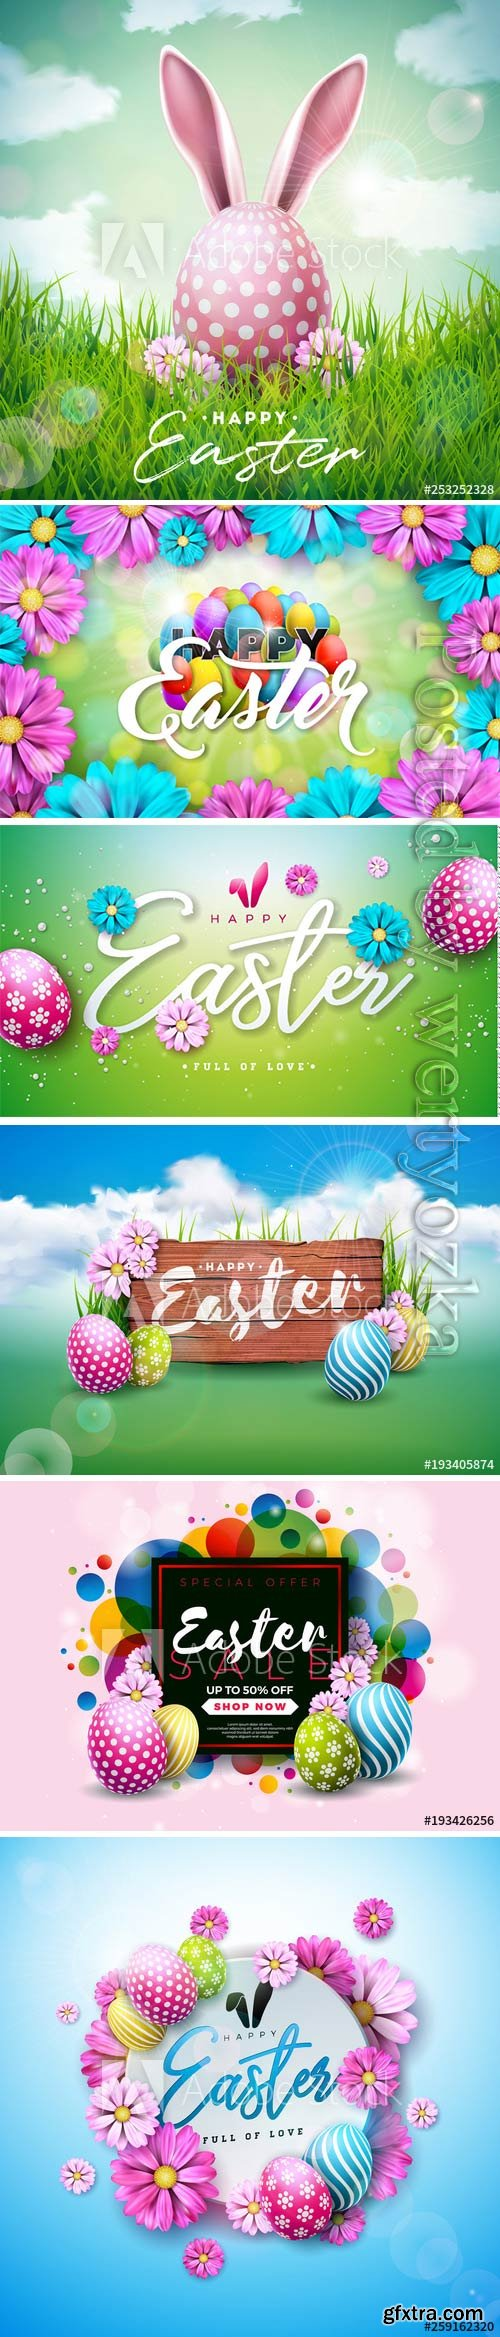 Happy Easter holiday with painted egg, rabbit ears and flower